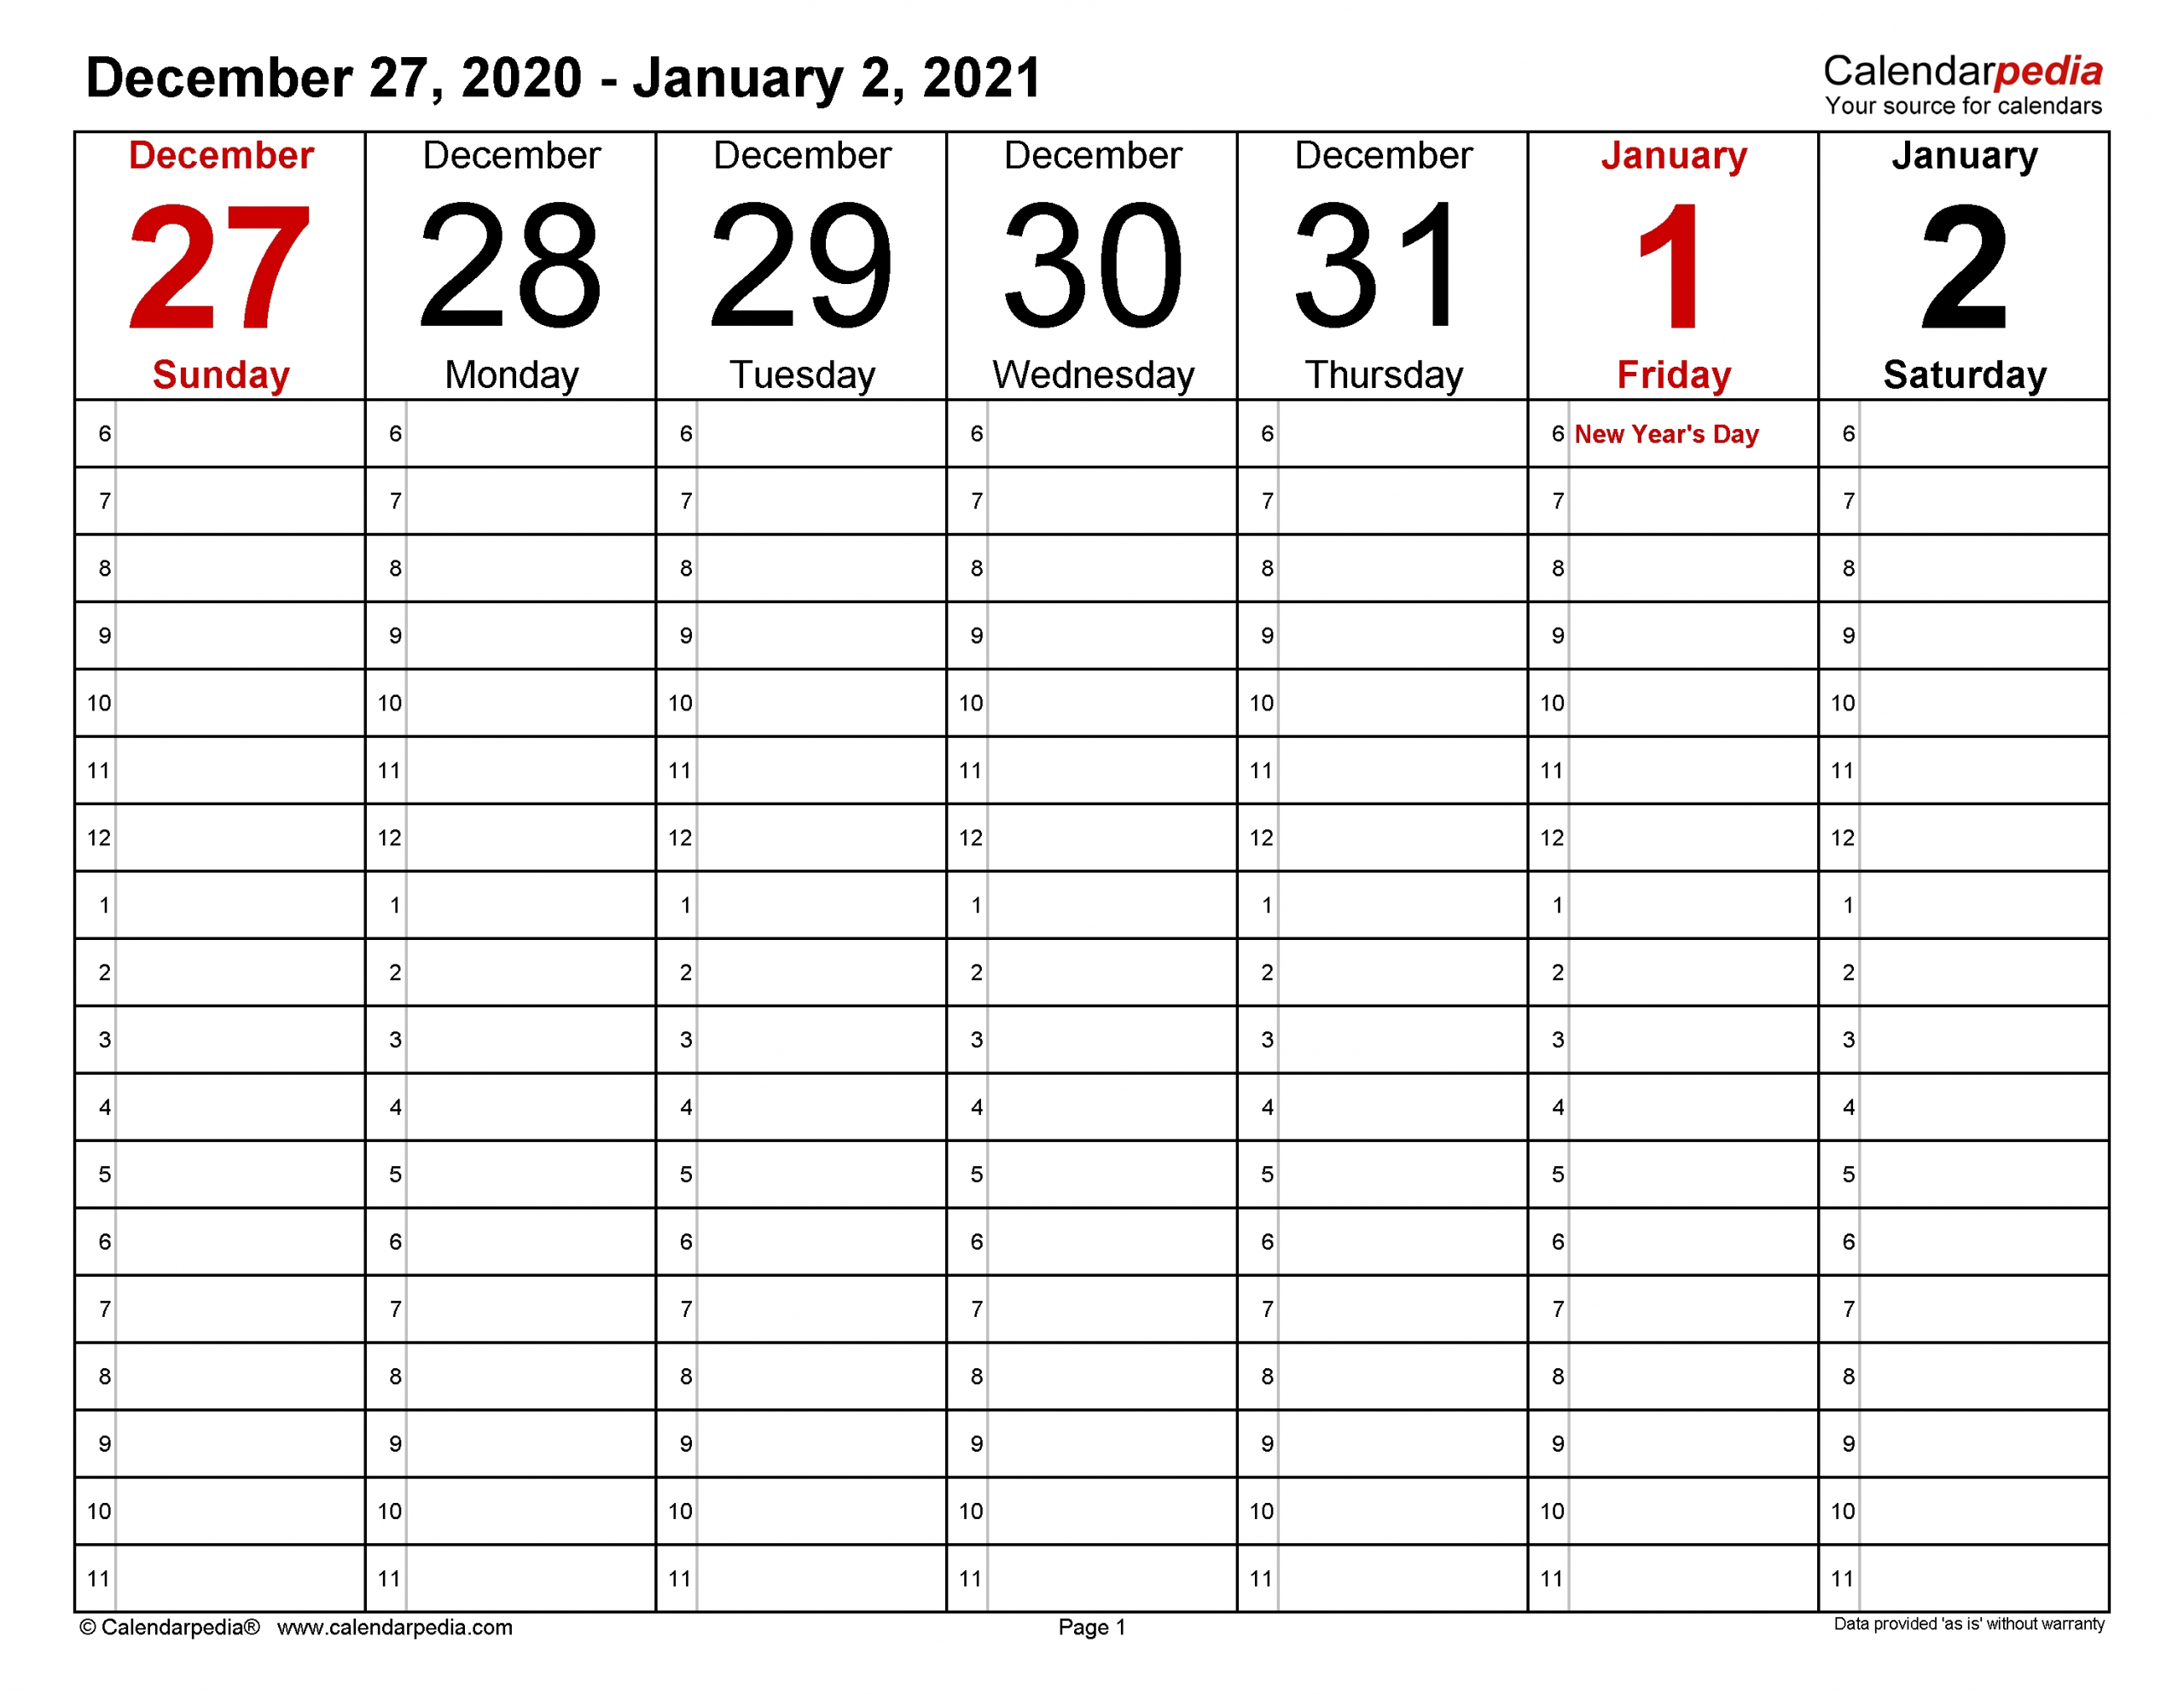 How To Free Printable Weekly Hourly Calendar 2021 | Get intended for 2021 Lined Calendar Printable Excel